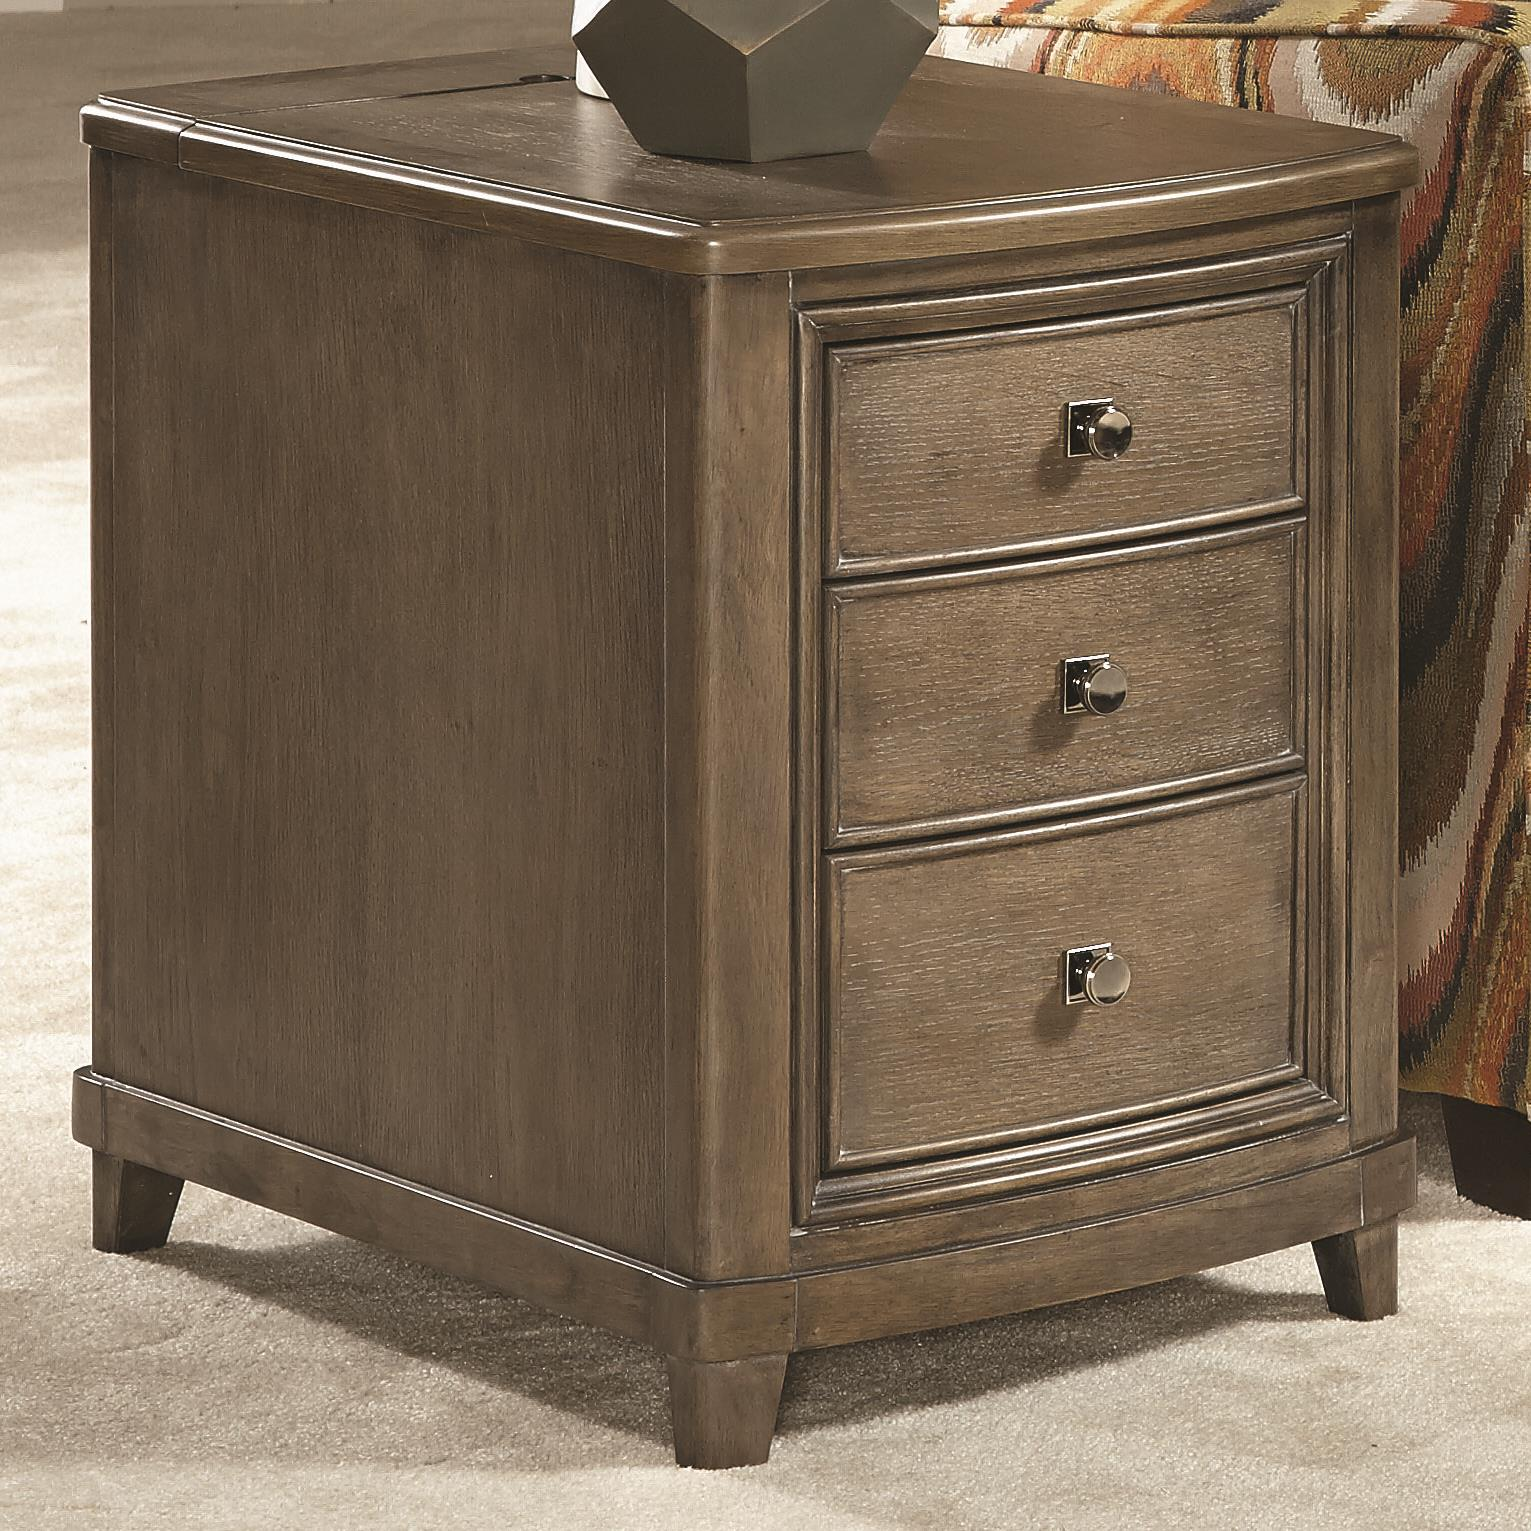 American Drew Park Studio Chairside Table - Item Number: 488-916